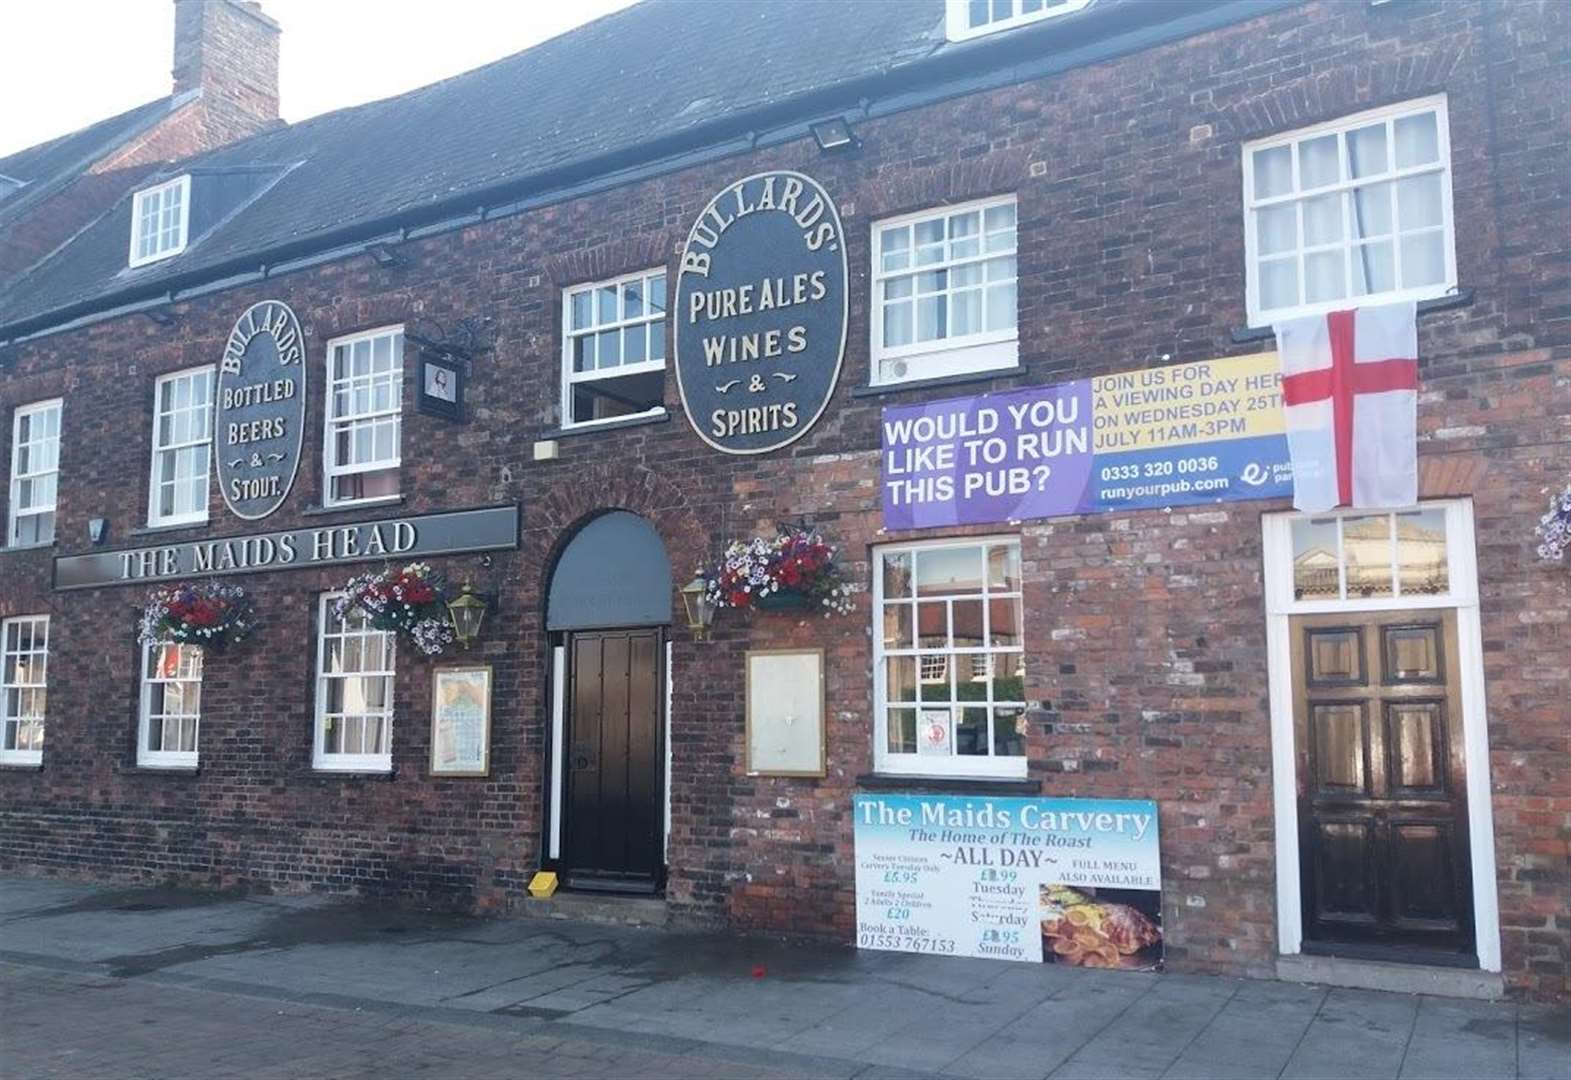 Search is on for new landlord at historic Lynn pub